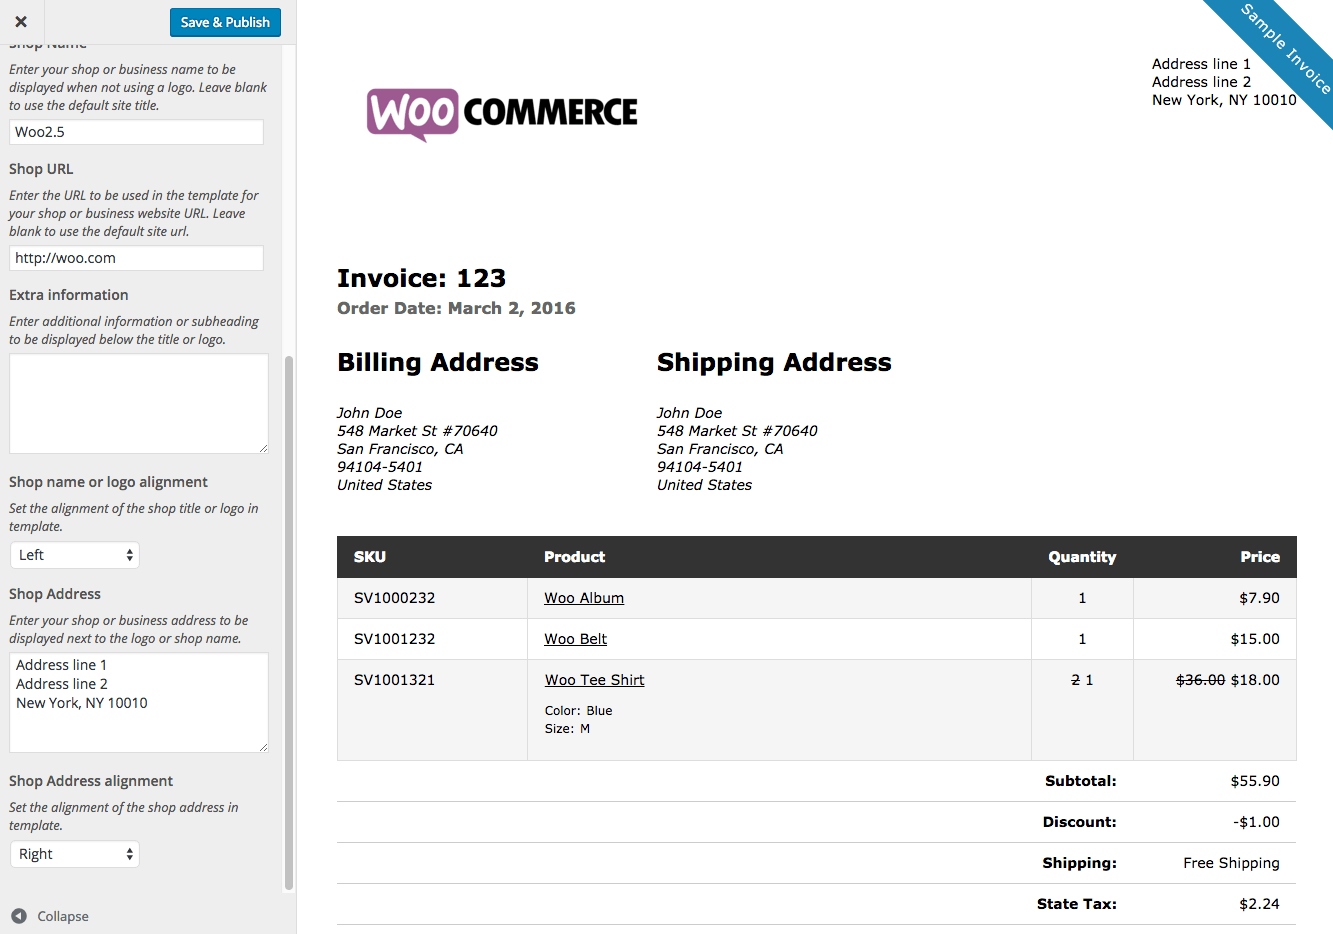 Atvingus  Pleasing Print Invoices Amp Packing Lists  Woocommerce With Fetching Woocommerce Print Invoices  Packing Lists Customizer With Agreeable Please Find Attached The Invoice Also Website Design Invoice In Addition Free Construction Invoice Template And Preforma Invoice As Well As Ebay Buyer Invoice Additionally Auto Shop Invoice Template From Woocommercecom With Atvingus  Fetching Print Invoices Amp Packing Lists  Woocommerce With Agreeable Woocommerce Print Invoices  Packing Lists Customizer And Pleasing Please Find Attached The Invoice Also Website Design Invoice In Addition Free Construction Invoice Template From Woocommercecom